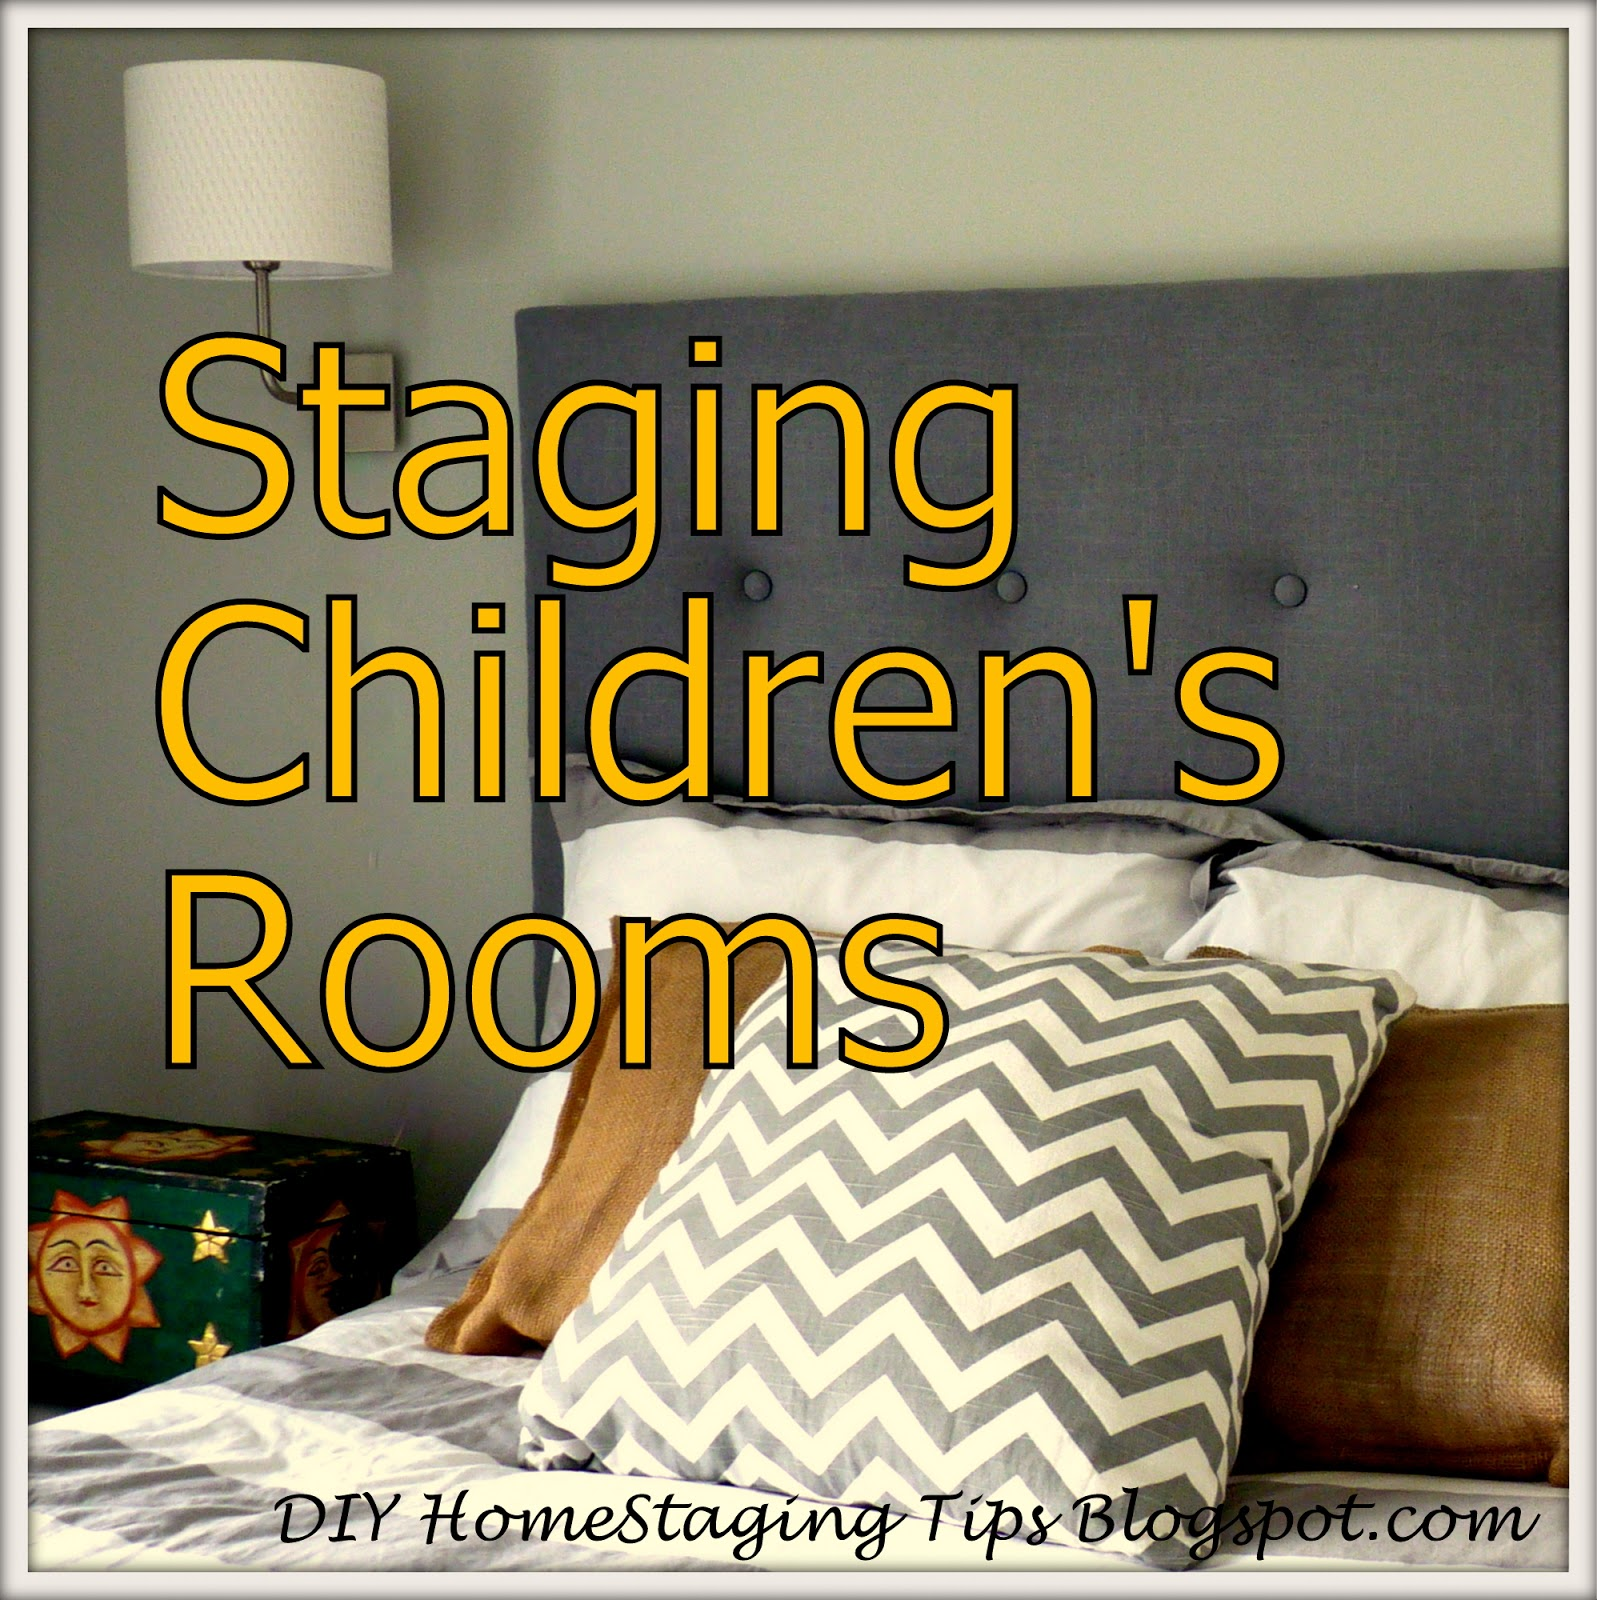 DIY Home Staging Tips: How To Stage Children's Rooms